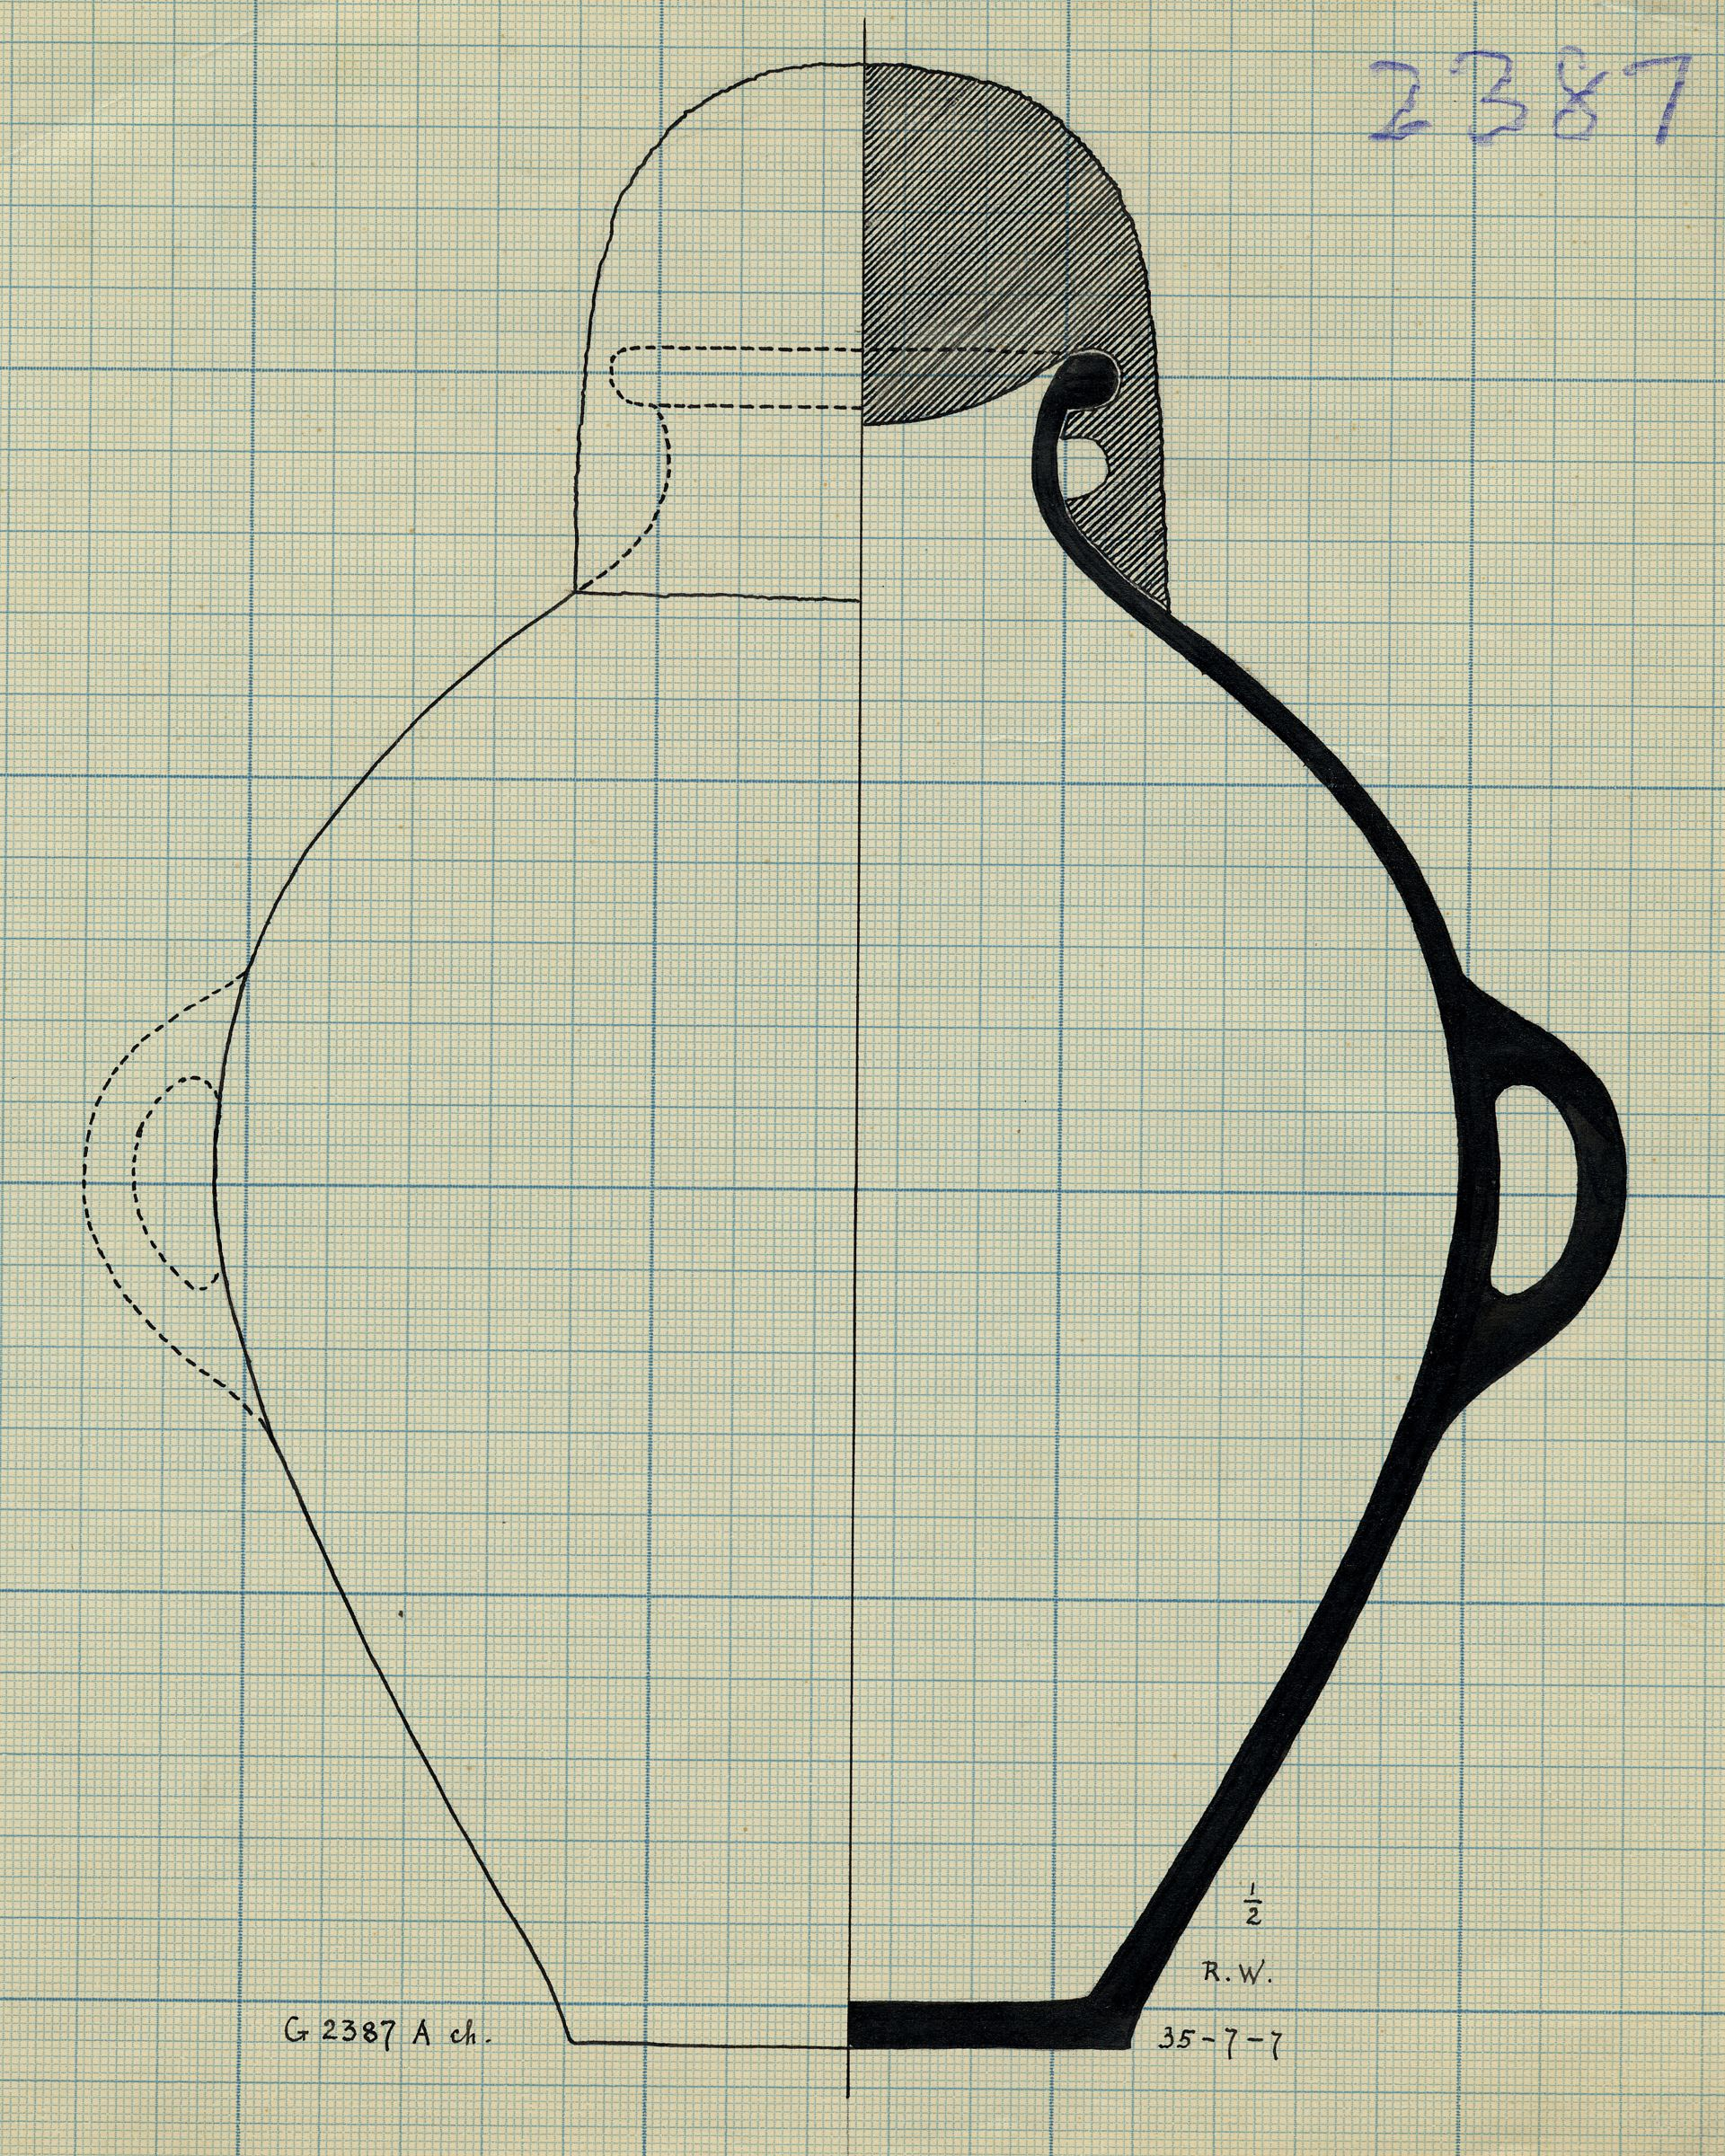 Drawings: G 2387, Shaft A, chamber: pottery, jar with two handles